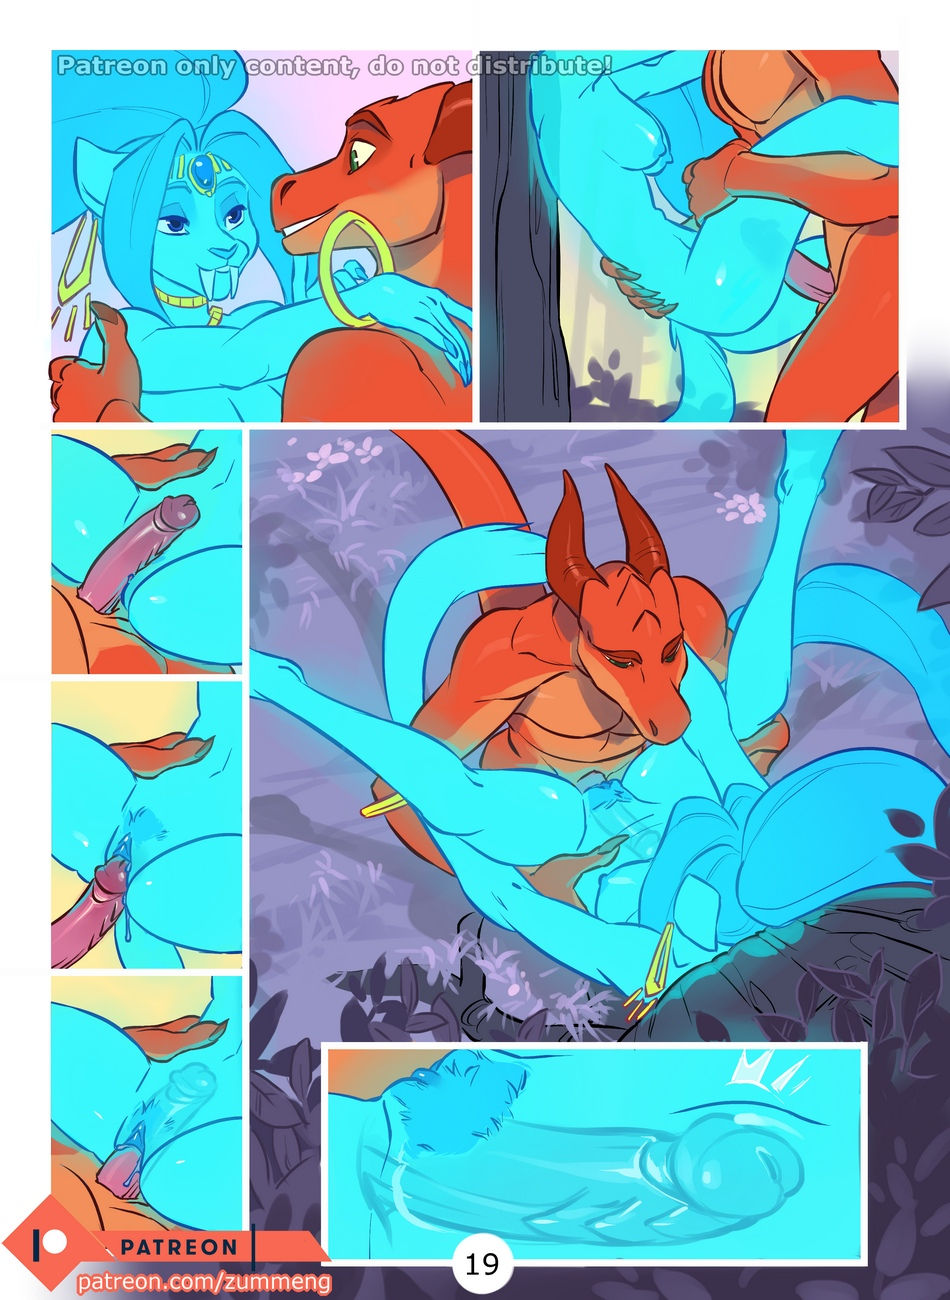 Wishes-Furry 20 free sex comic